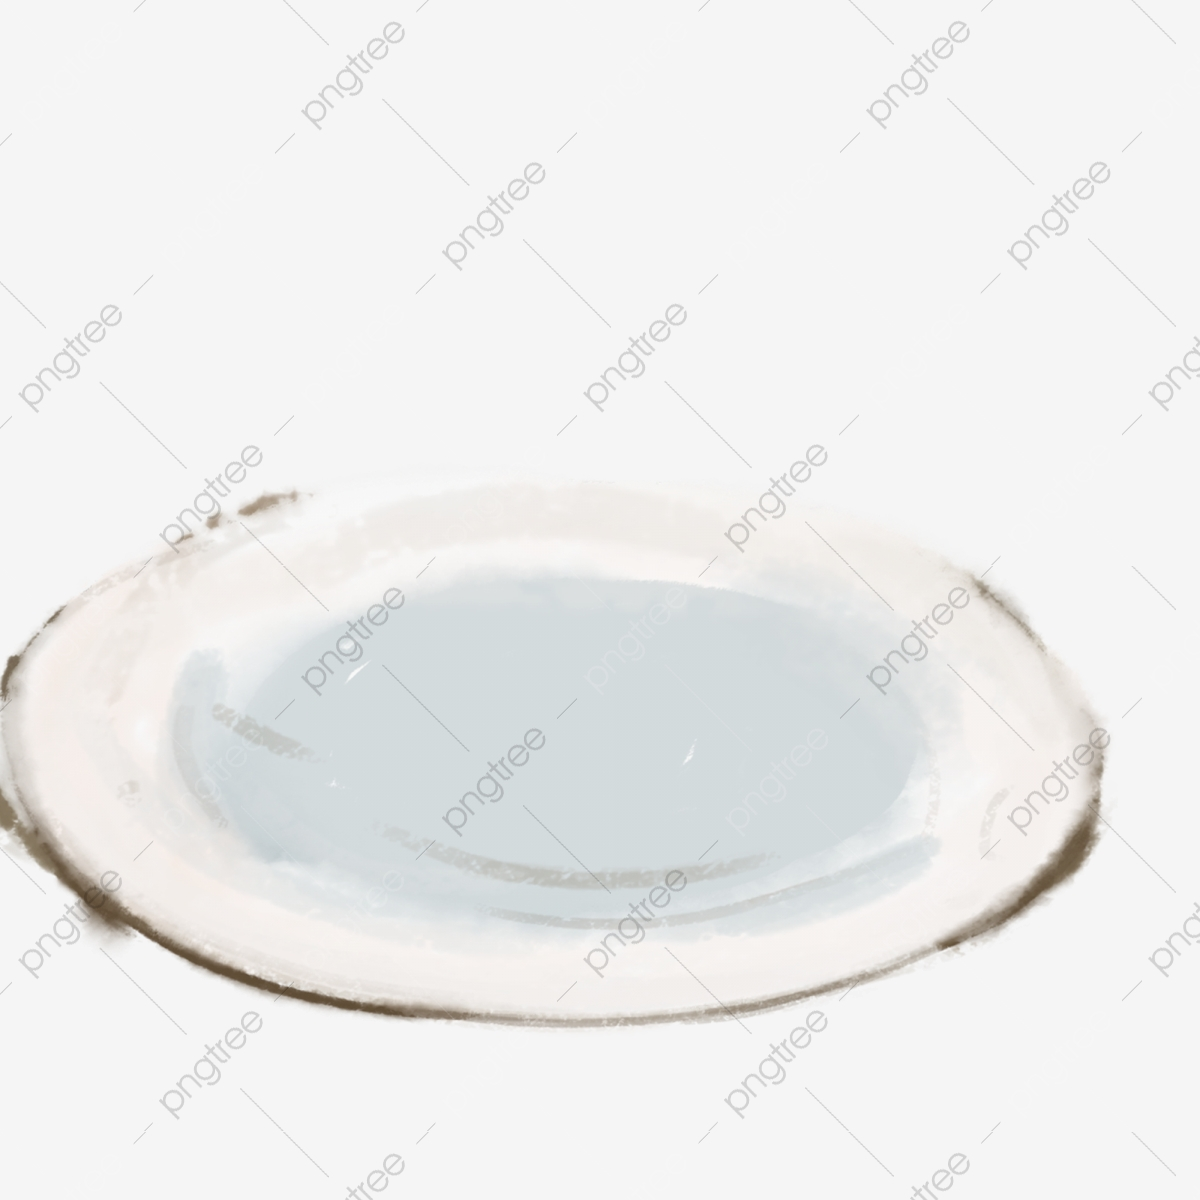 Stoneware Plate, Plate Clipart, Empty Plate, Plate PNG Transparent.